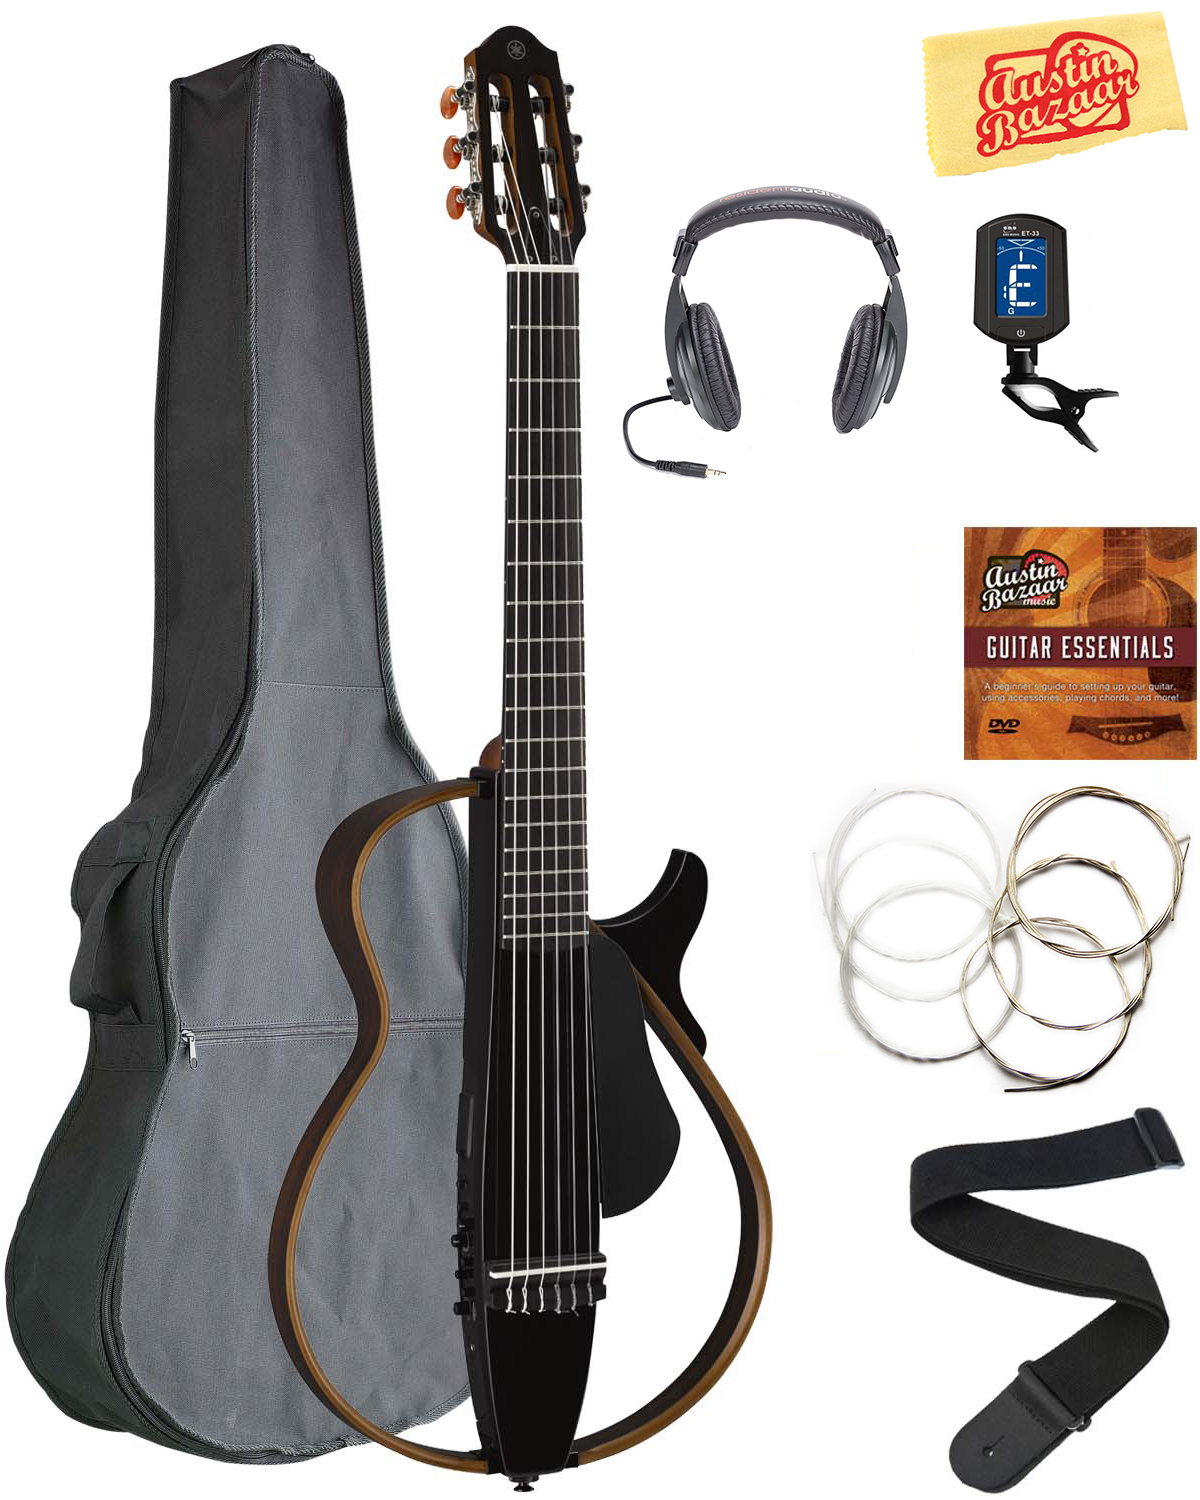 yamaha slg200n nylon string silent guitar trans black w rh ebay com yamaha guitar buying guide Yamaha Bass Guitar